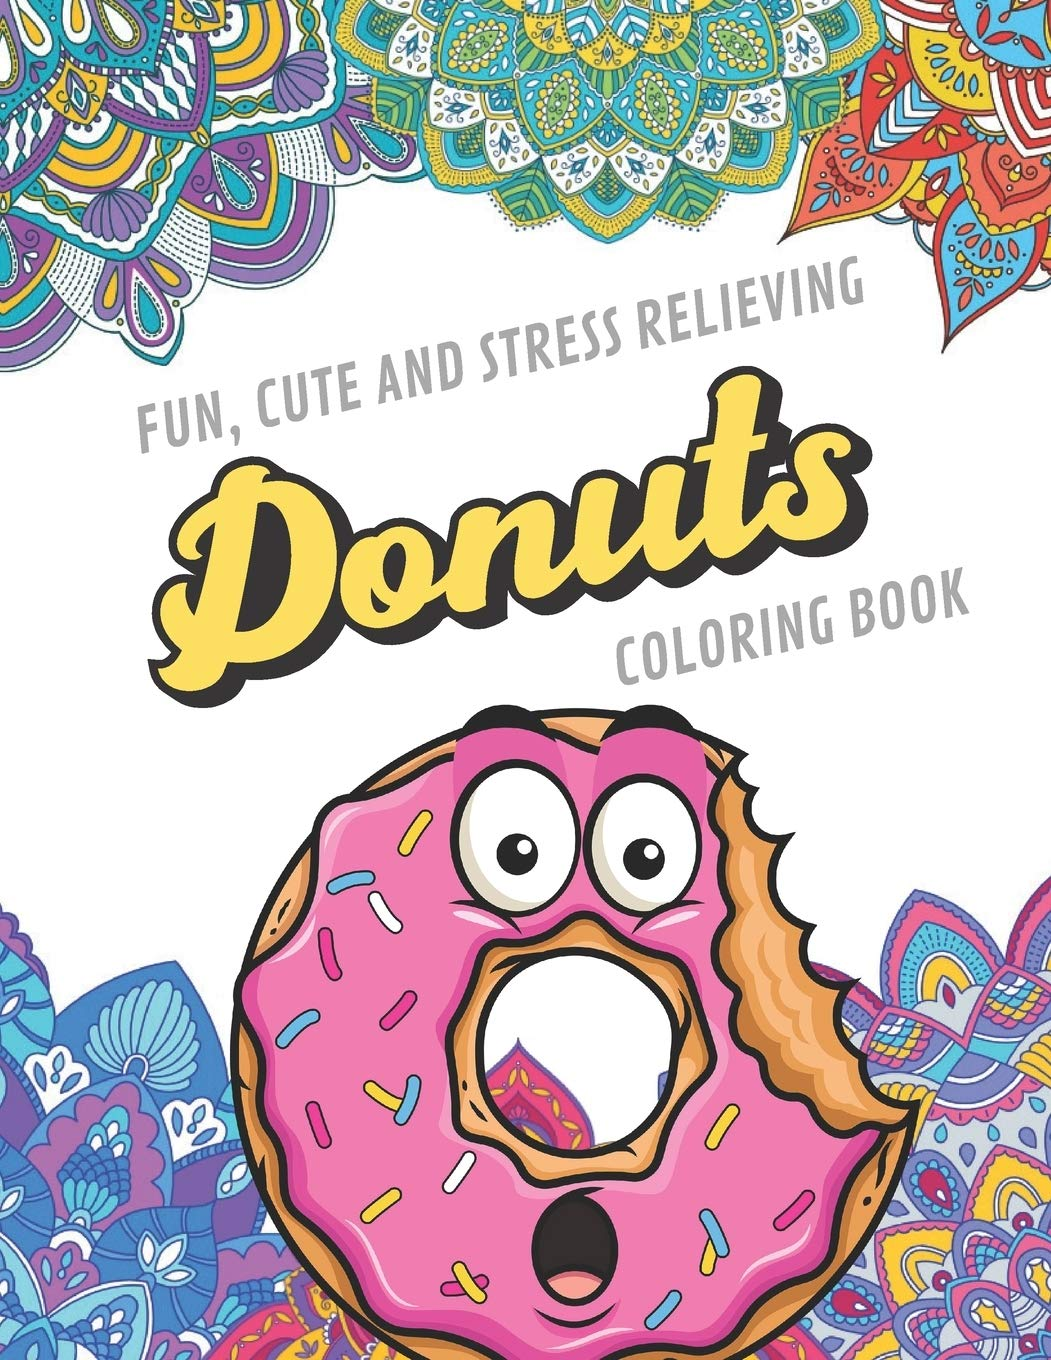 Fun Cute And Stress Relieving Donuts Coloring Book Find Relaxation And Mindfulness With Stress Relieving Color Pages Made Of Beautiful Black And Perfect Gag Gift Birthday Present Or Holidays Publishing Originalcoloringpages